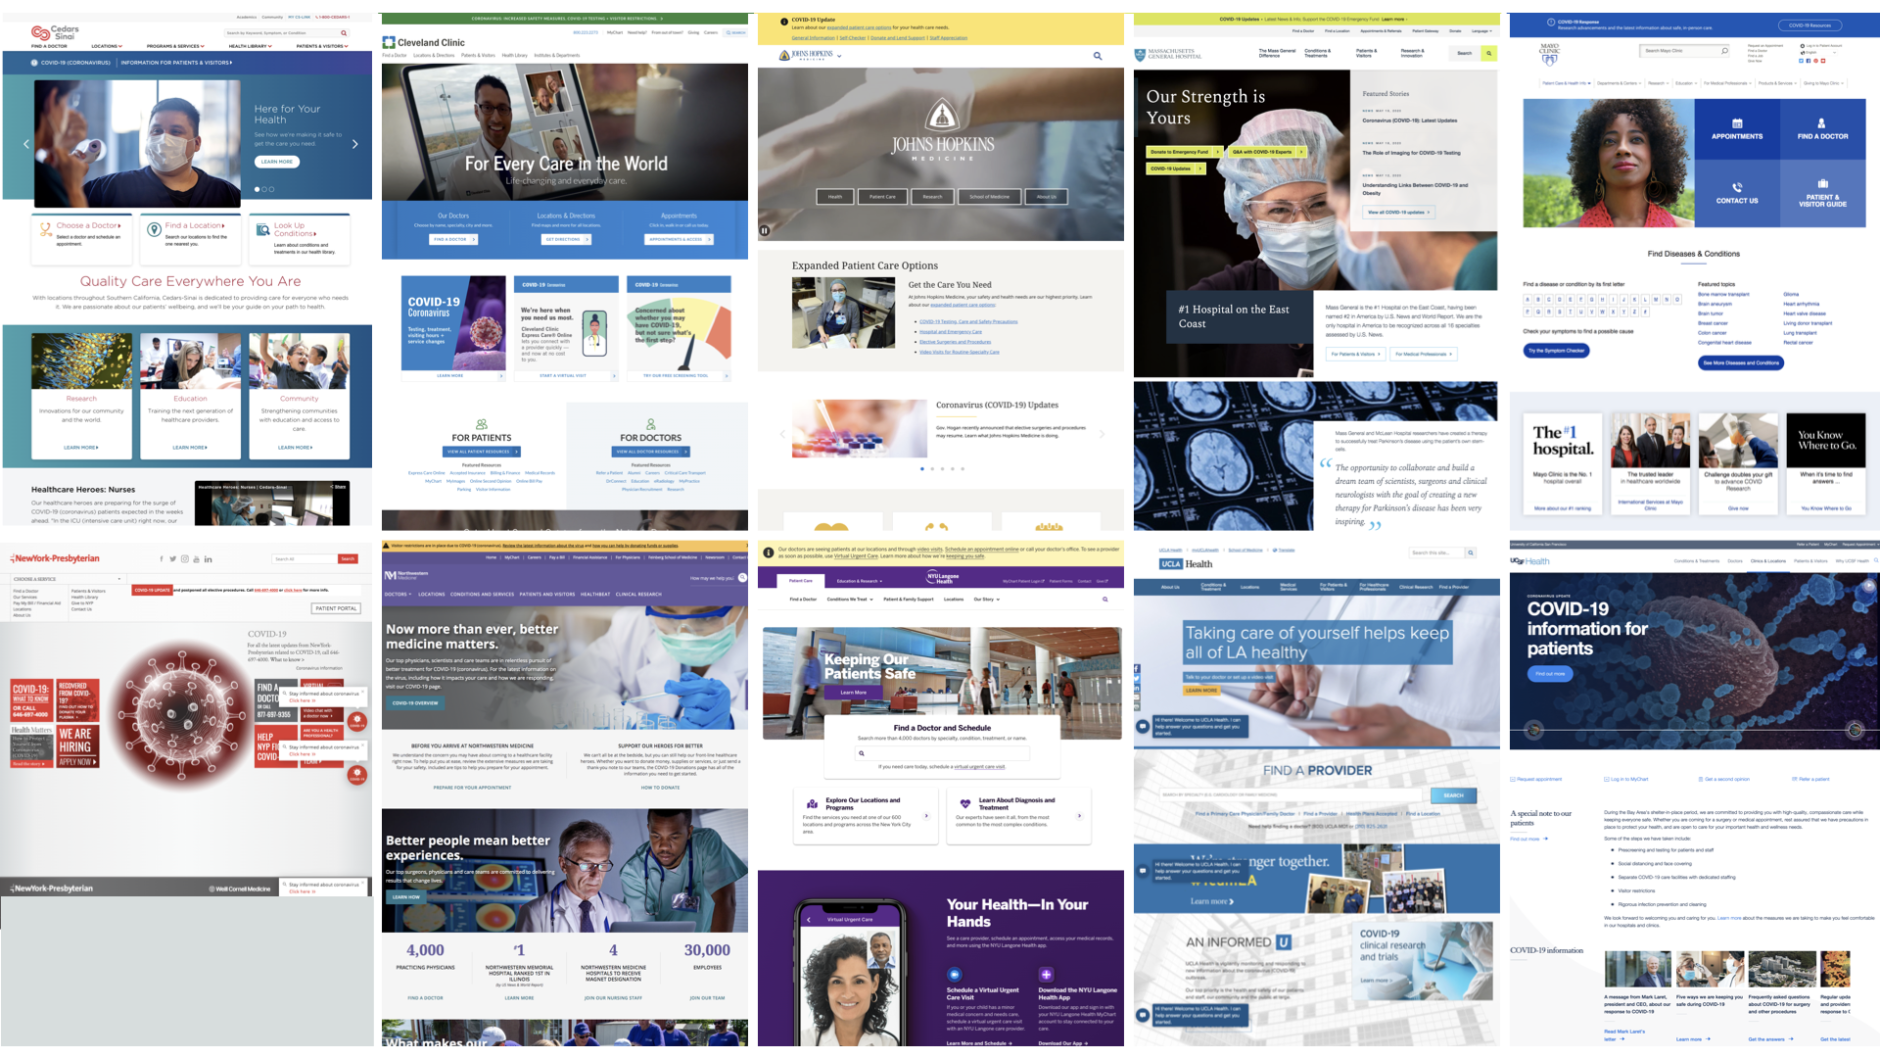 Hospital Home Pages